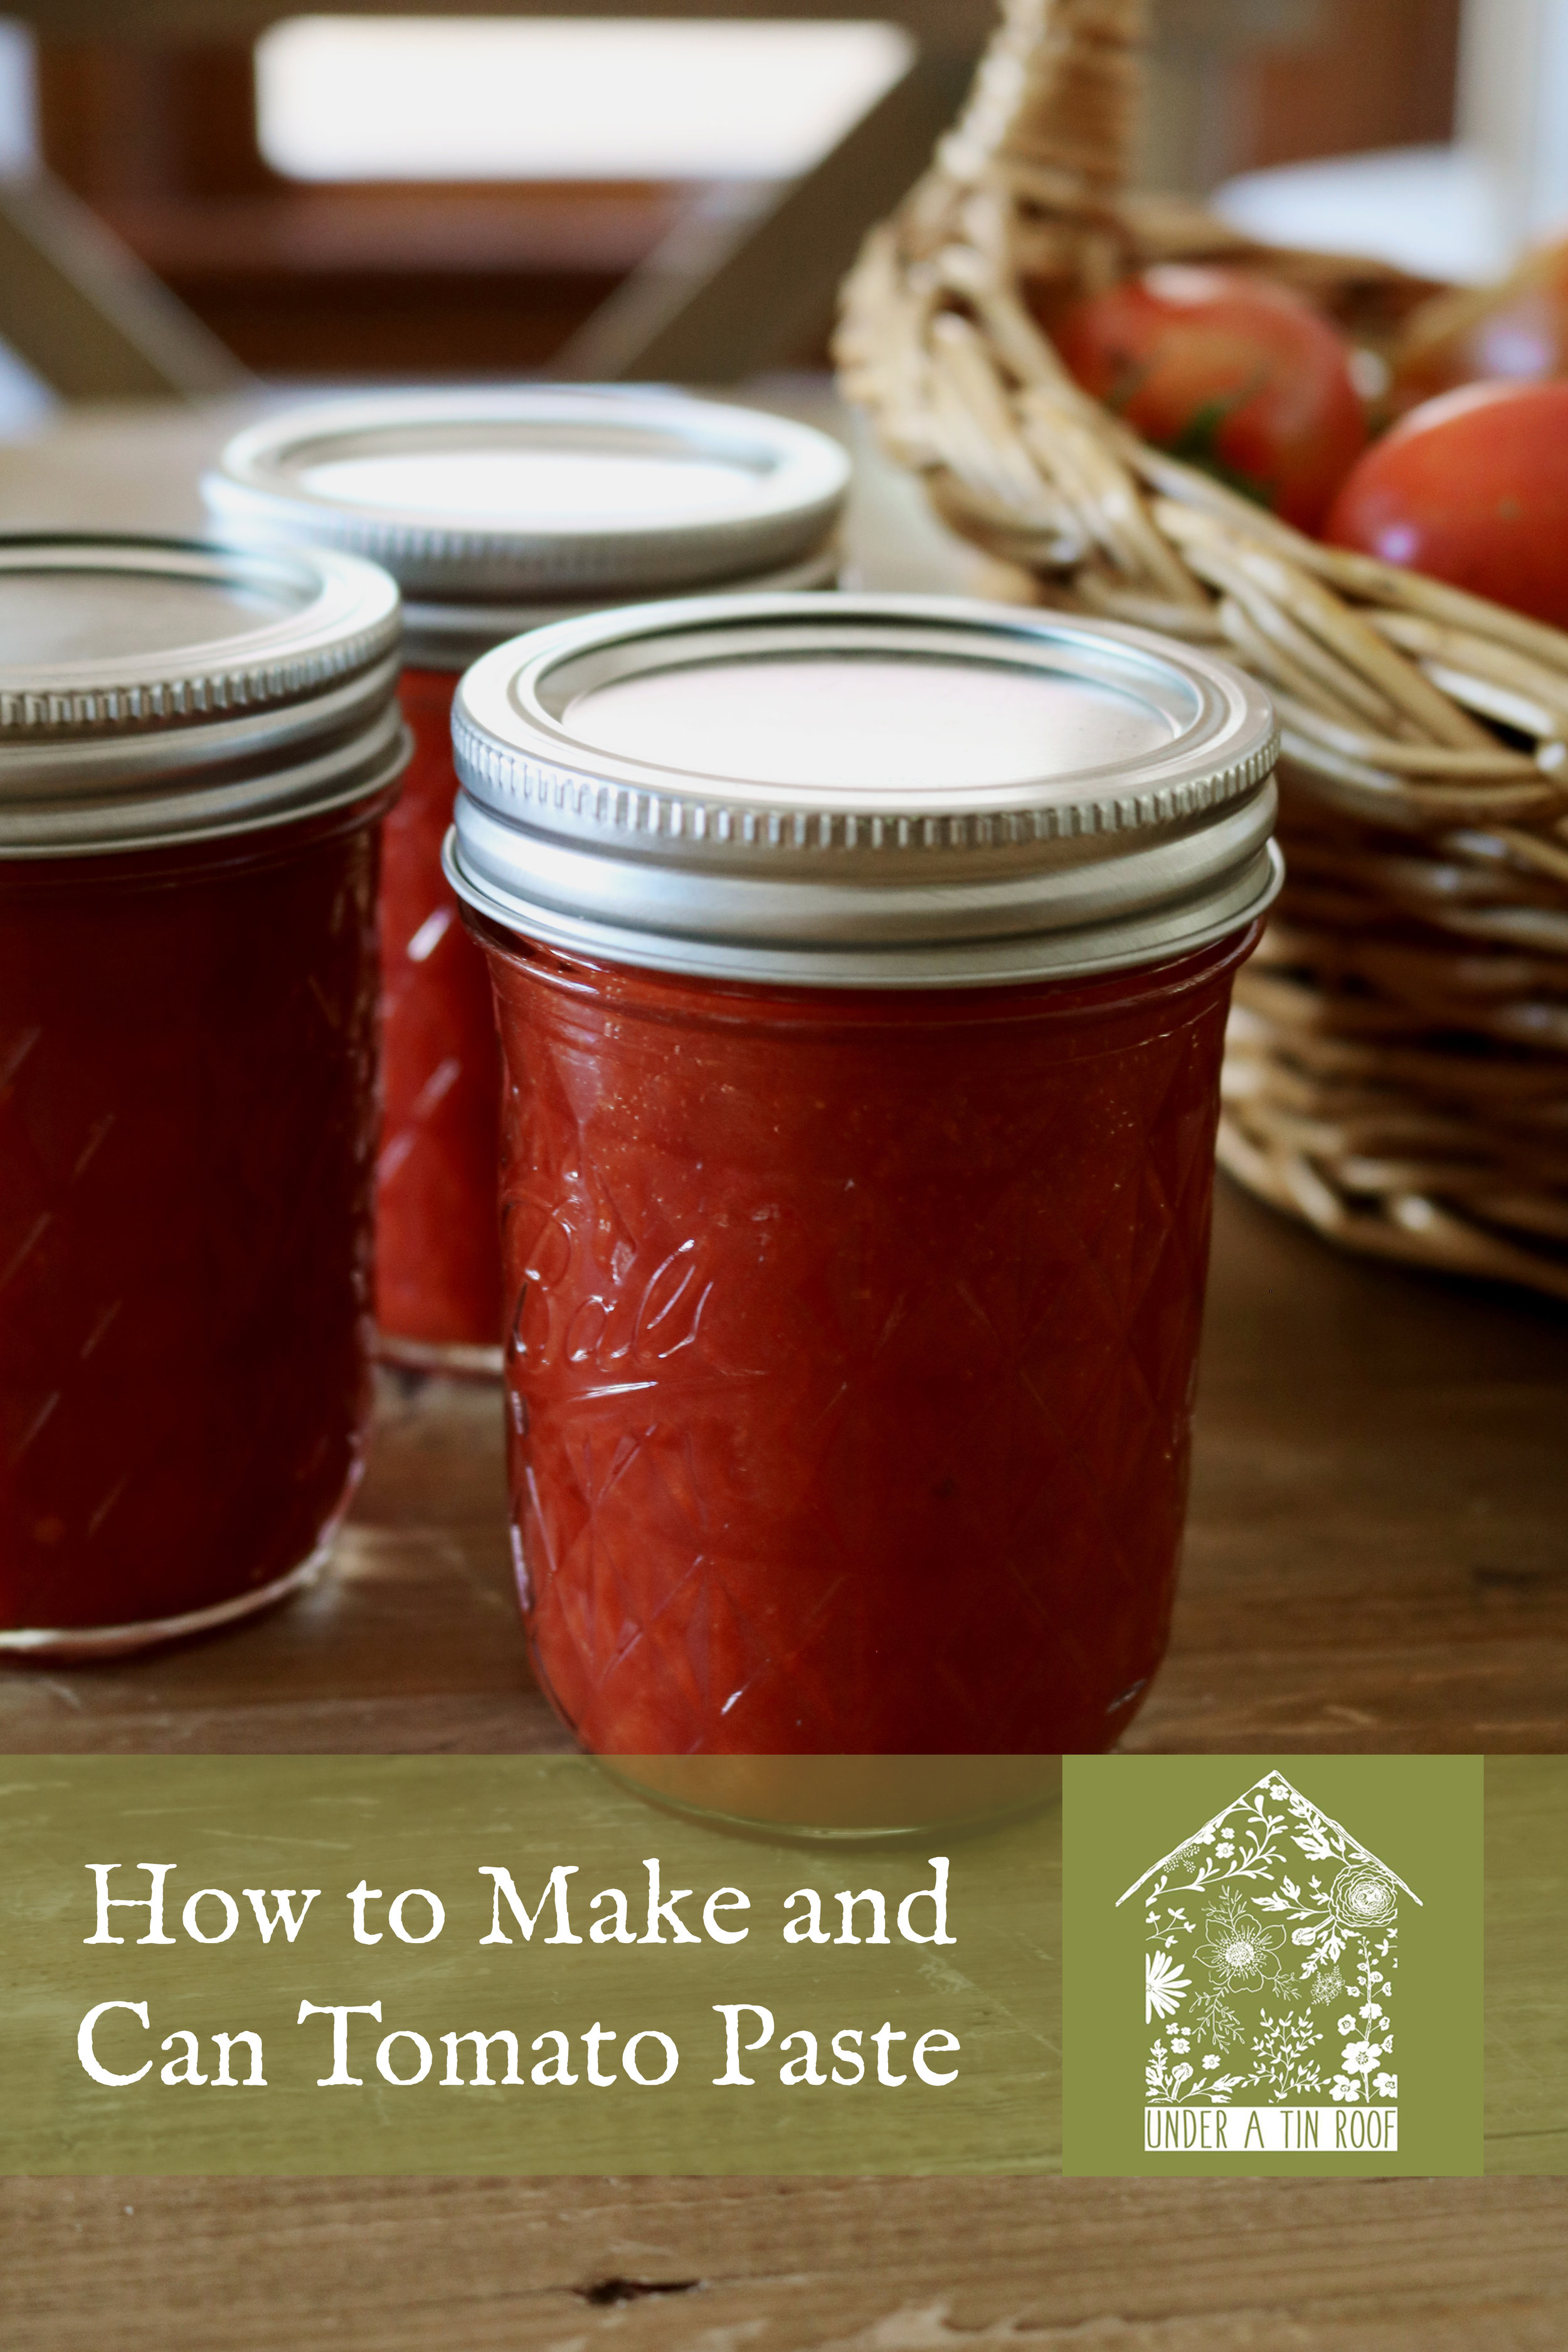 How to Make and Can Tomato Paste - Under A Tin Roof Blog